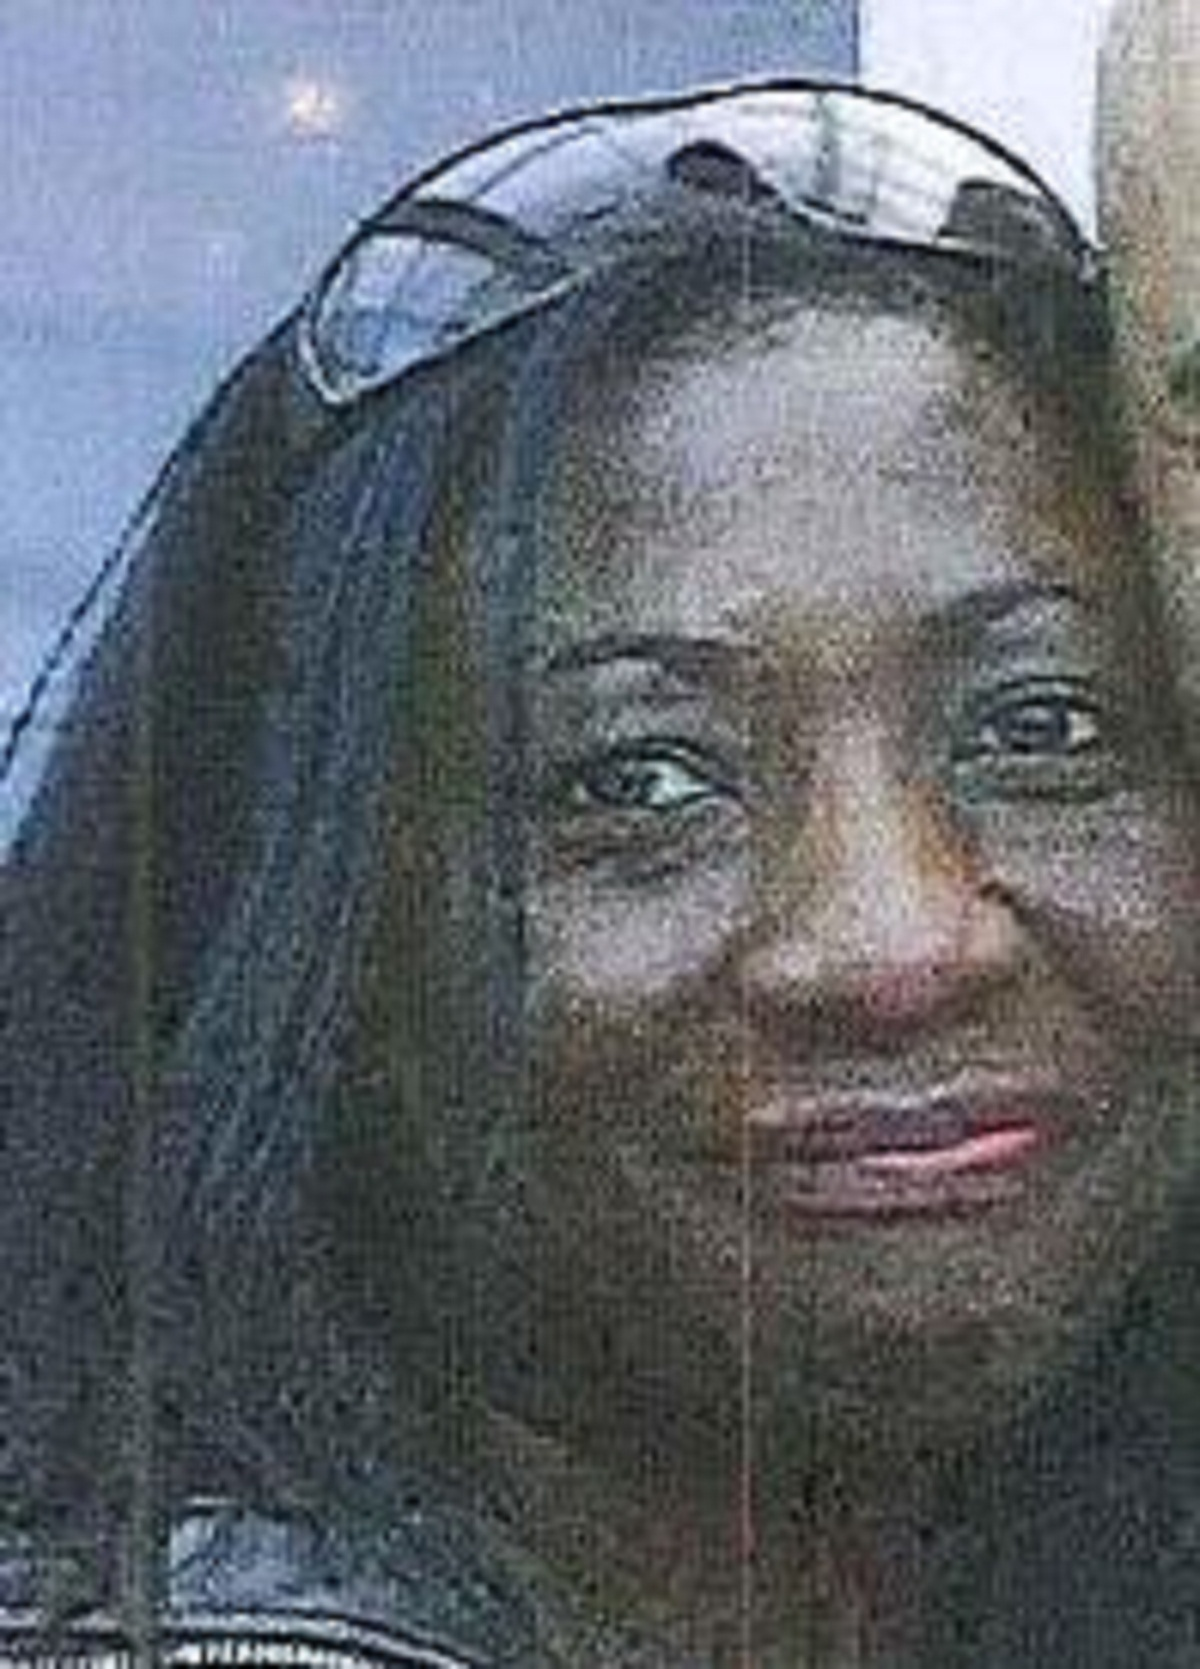 'Missing' Walkden mum who claimed she was in Jamaica found safe and well - in Scotland